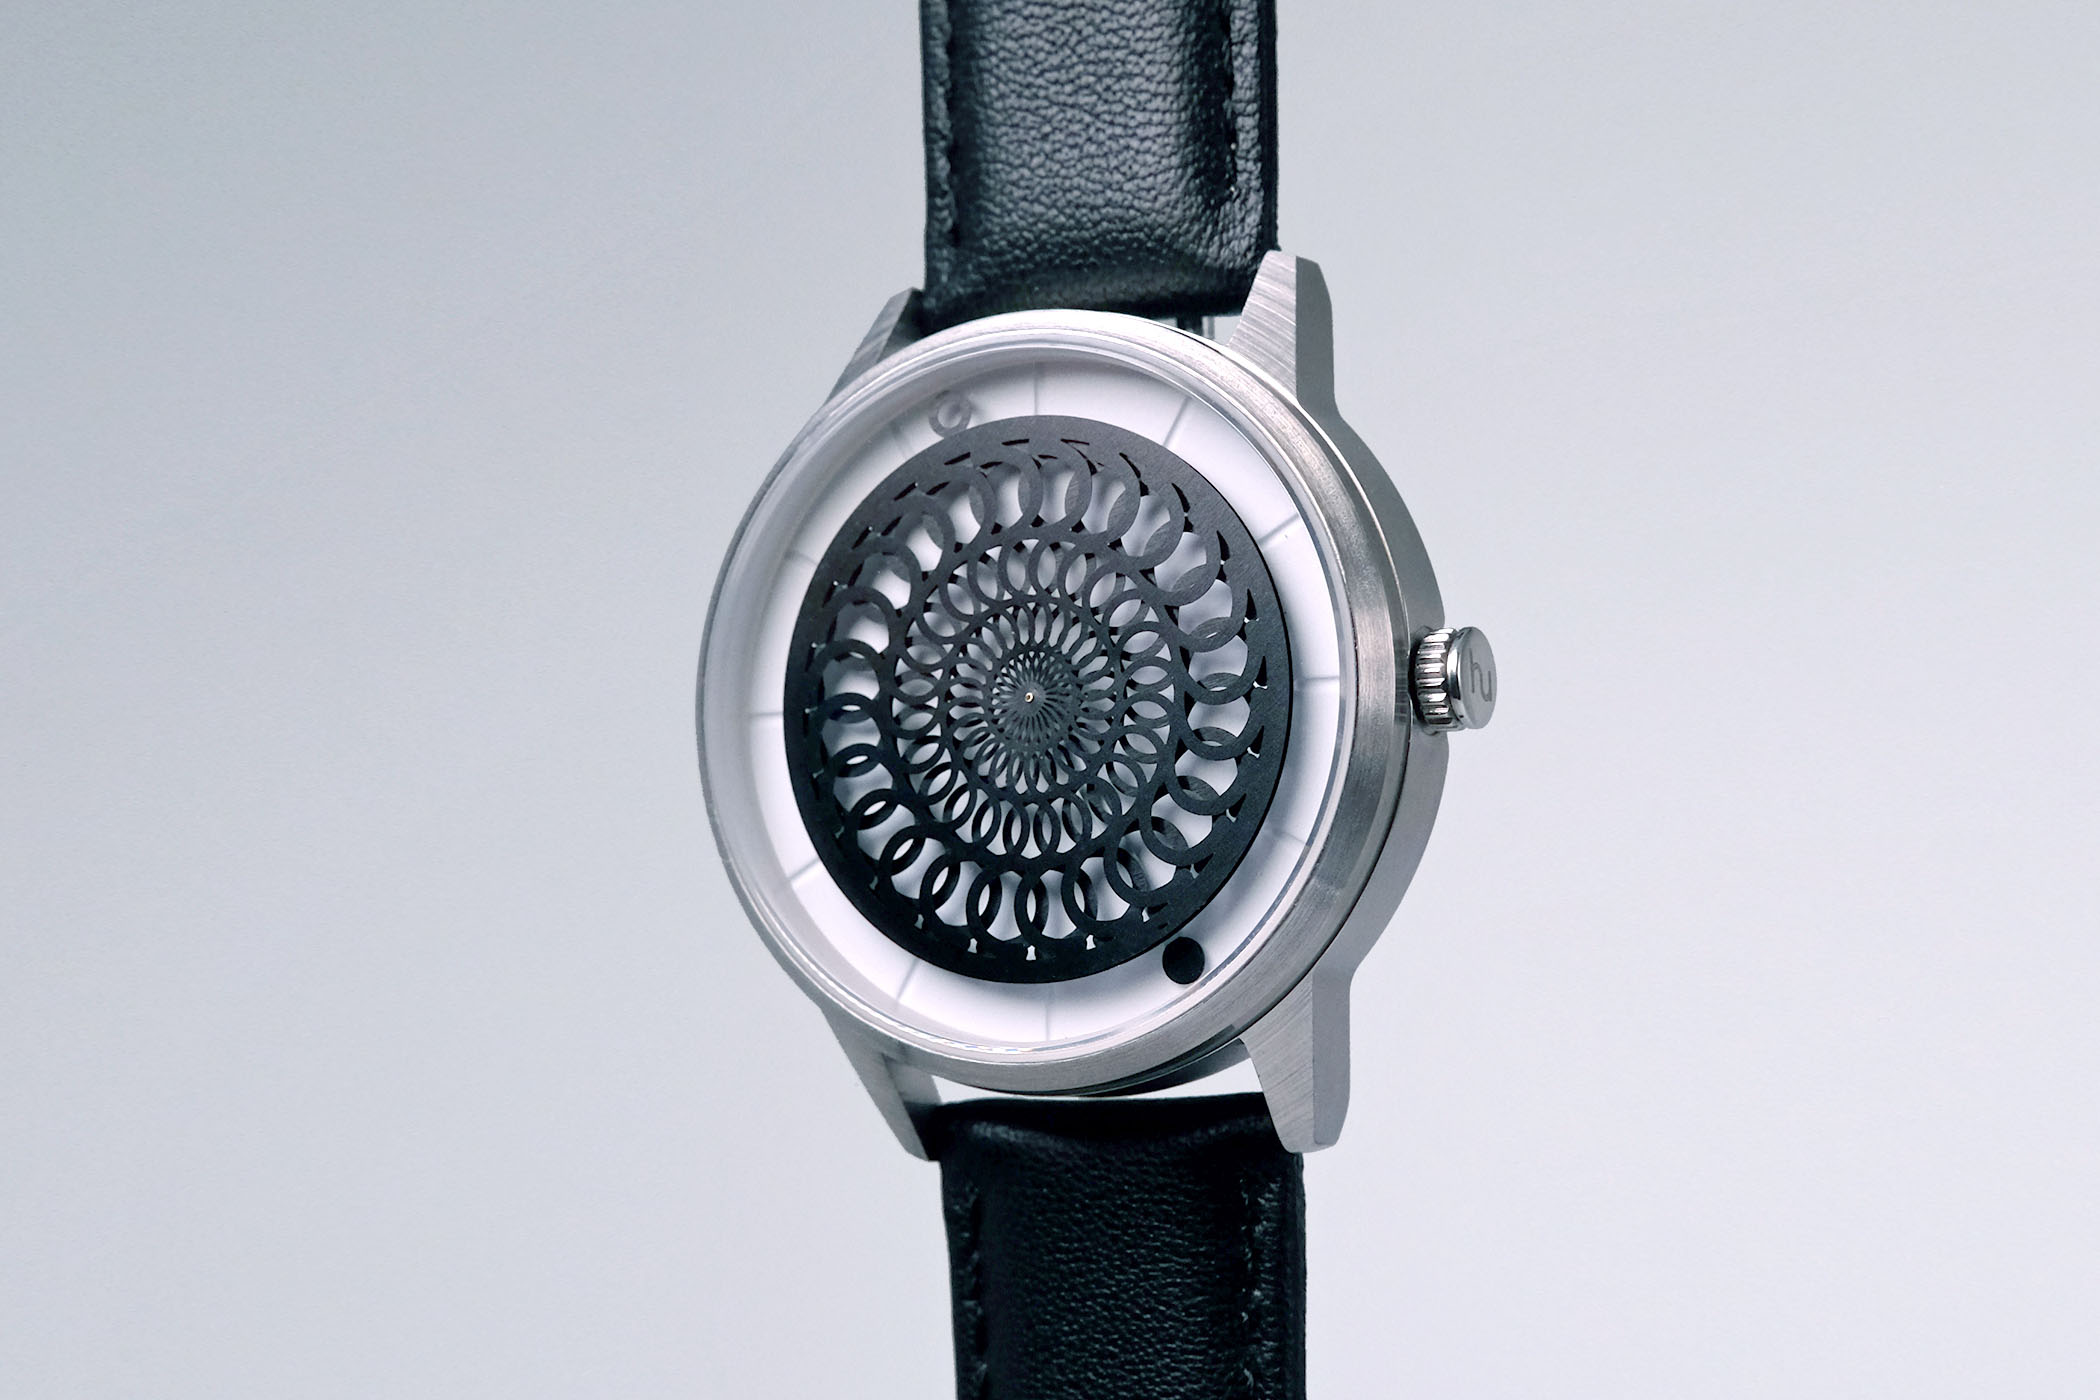 Humism - Automatic Watches with Animated Dials That Make ...